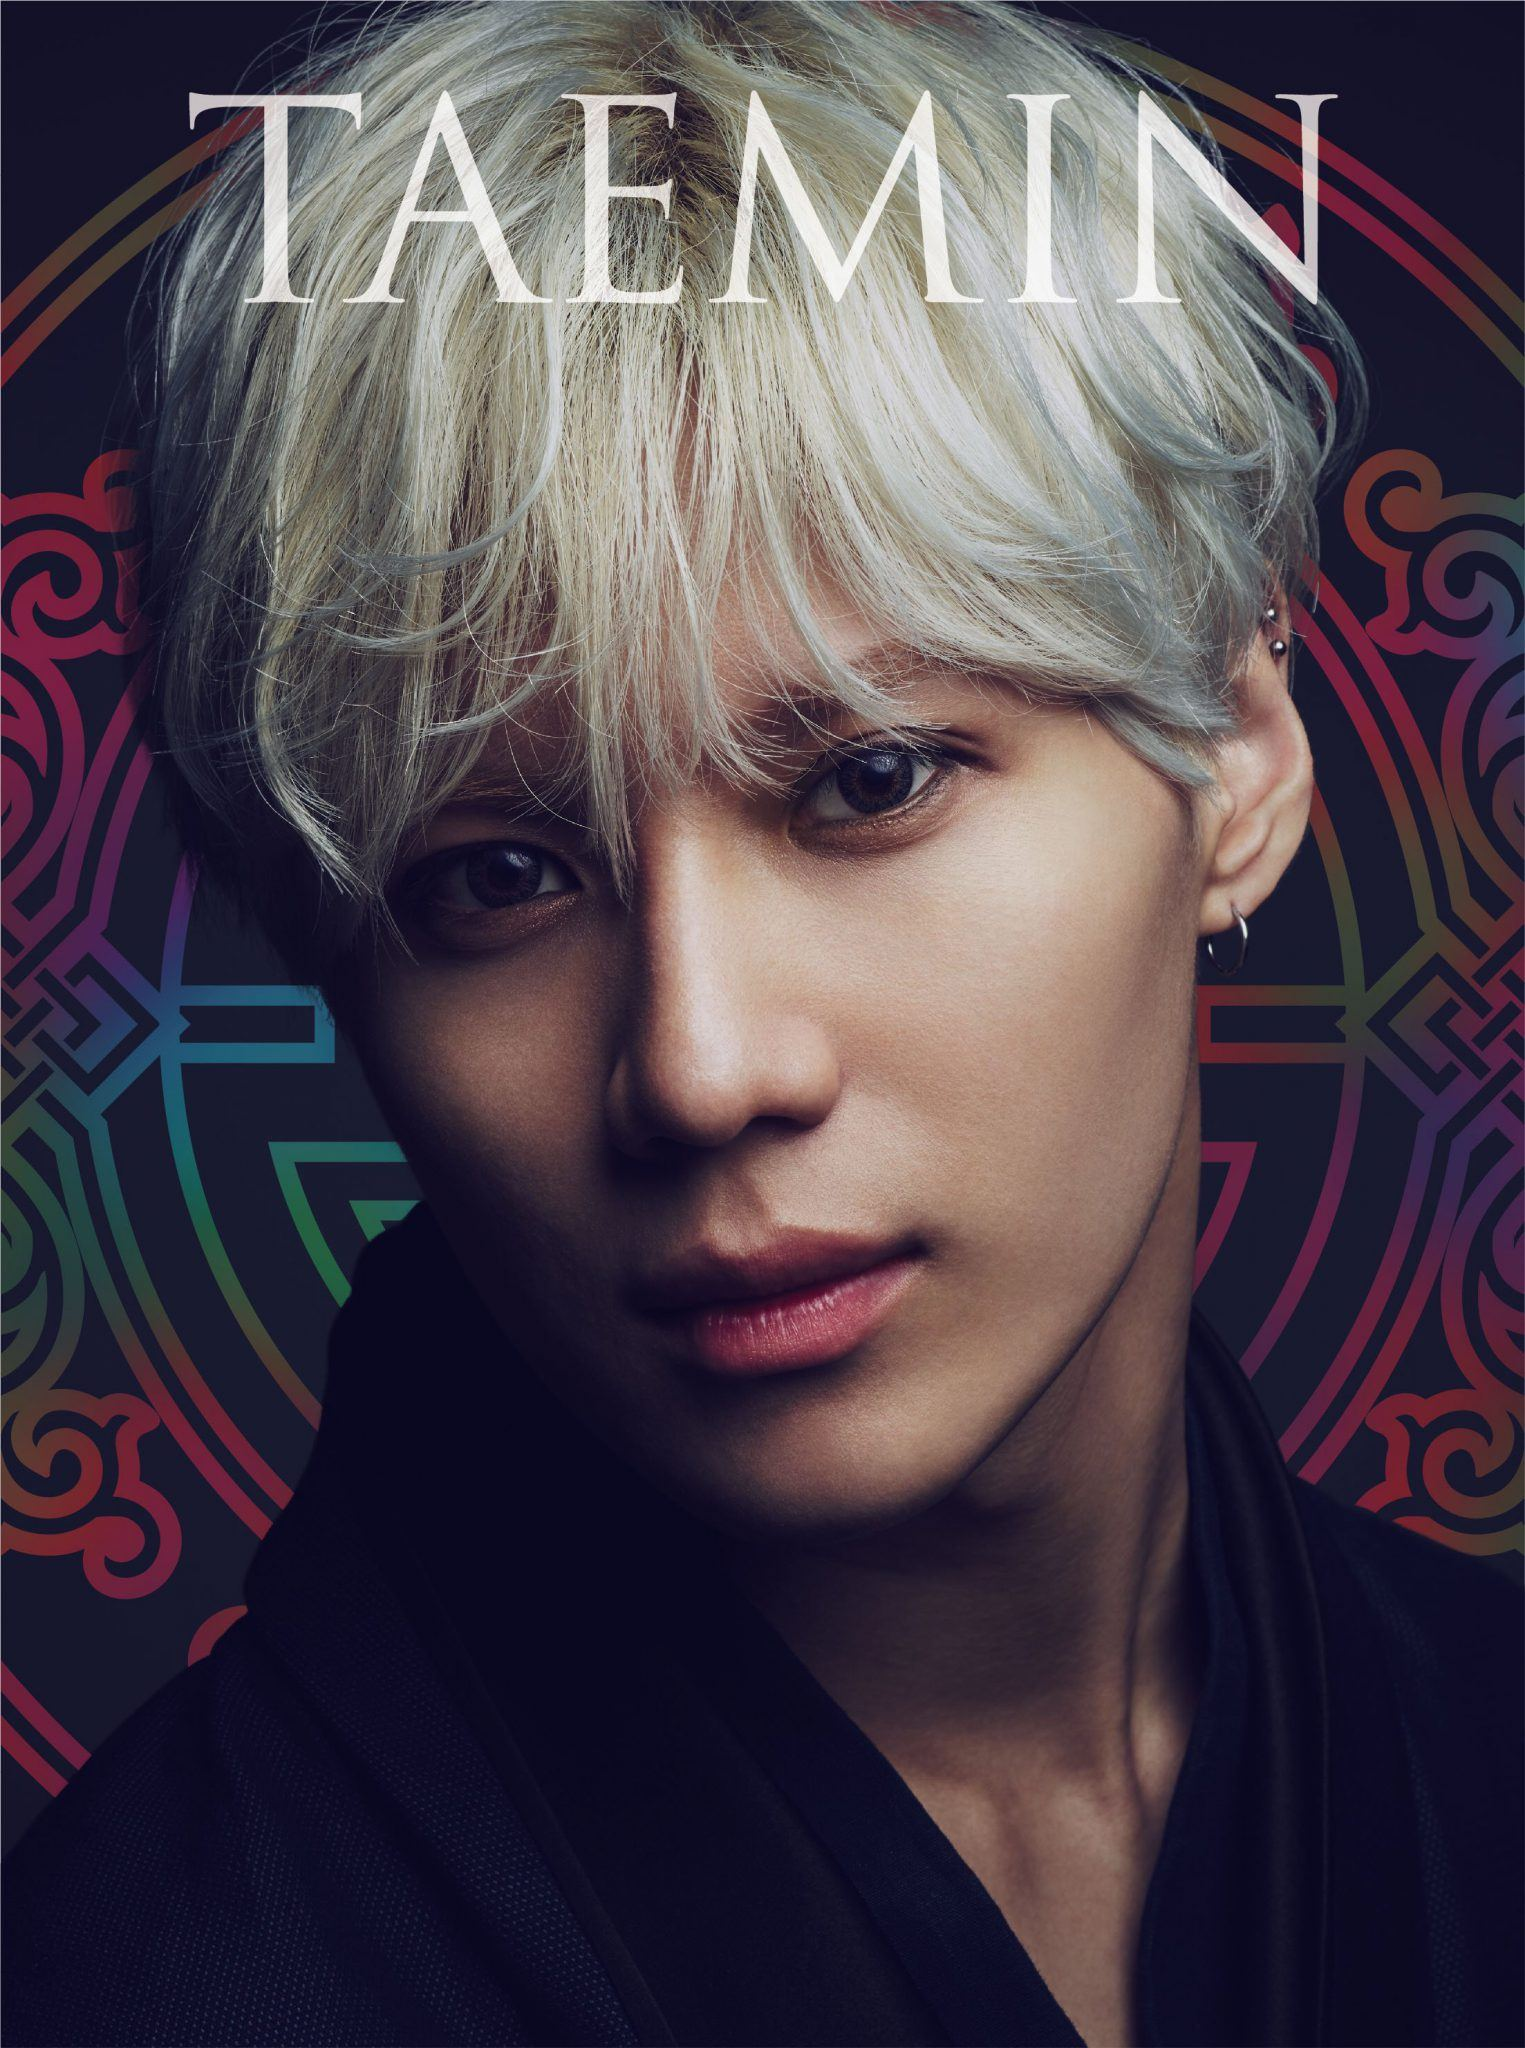 Dancing Girls Japanese Wallpaper Taemin To Release His Second Japanese Solo Album Flame Of